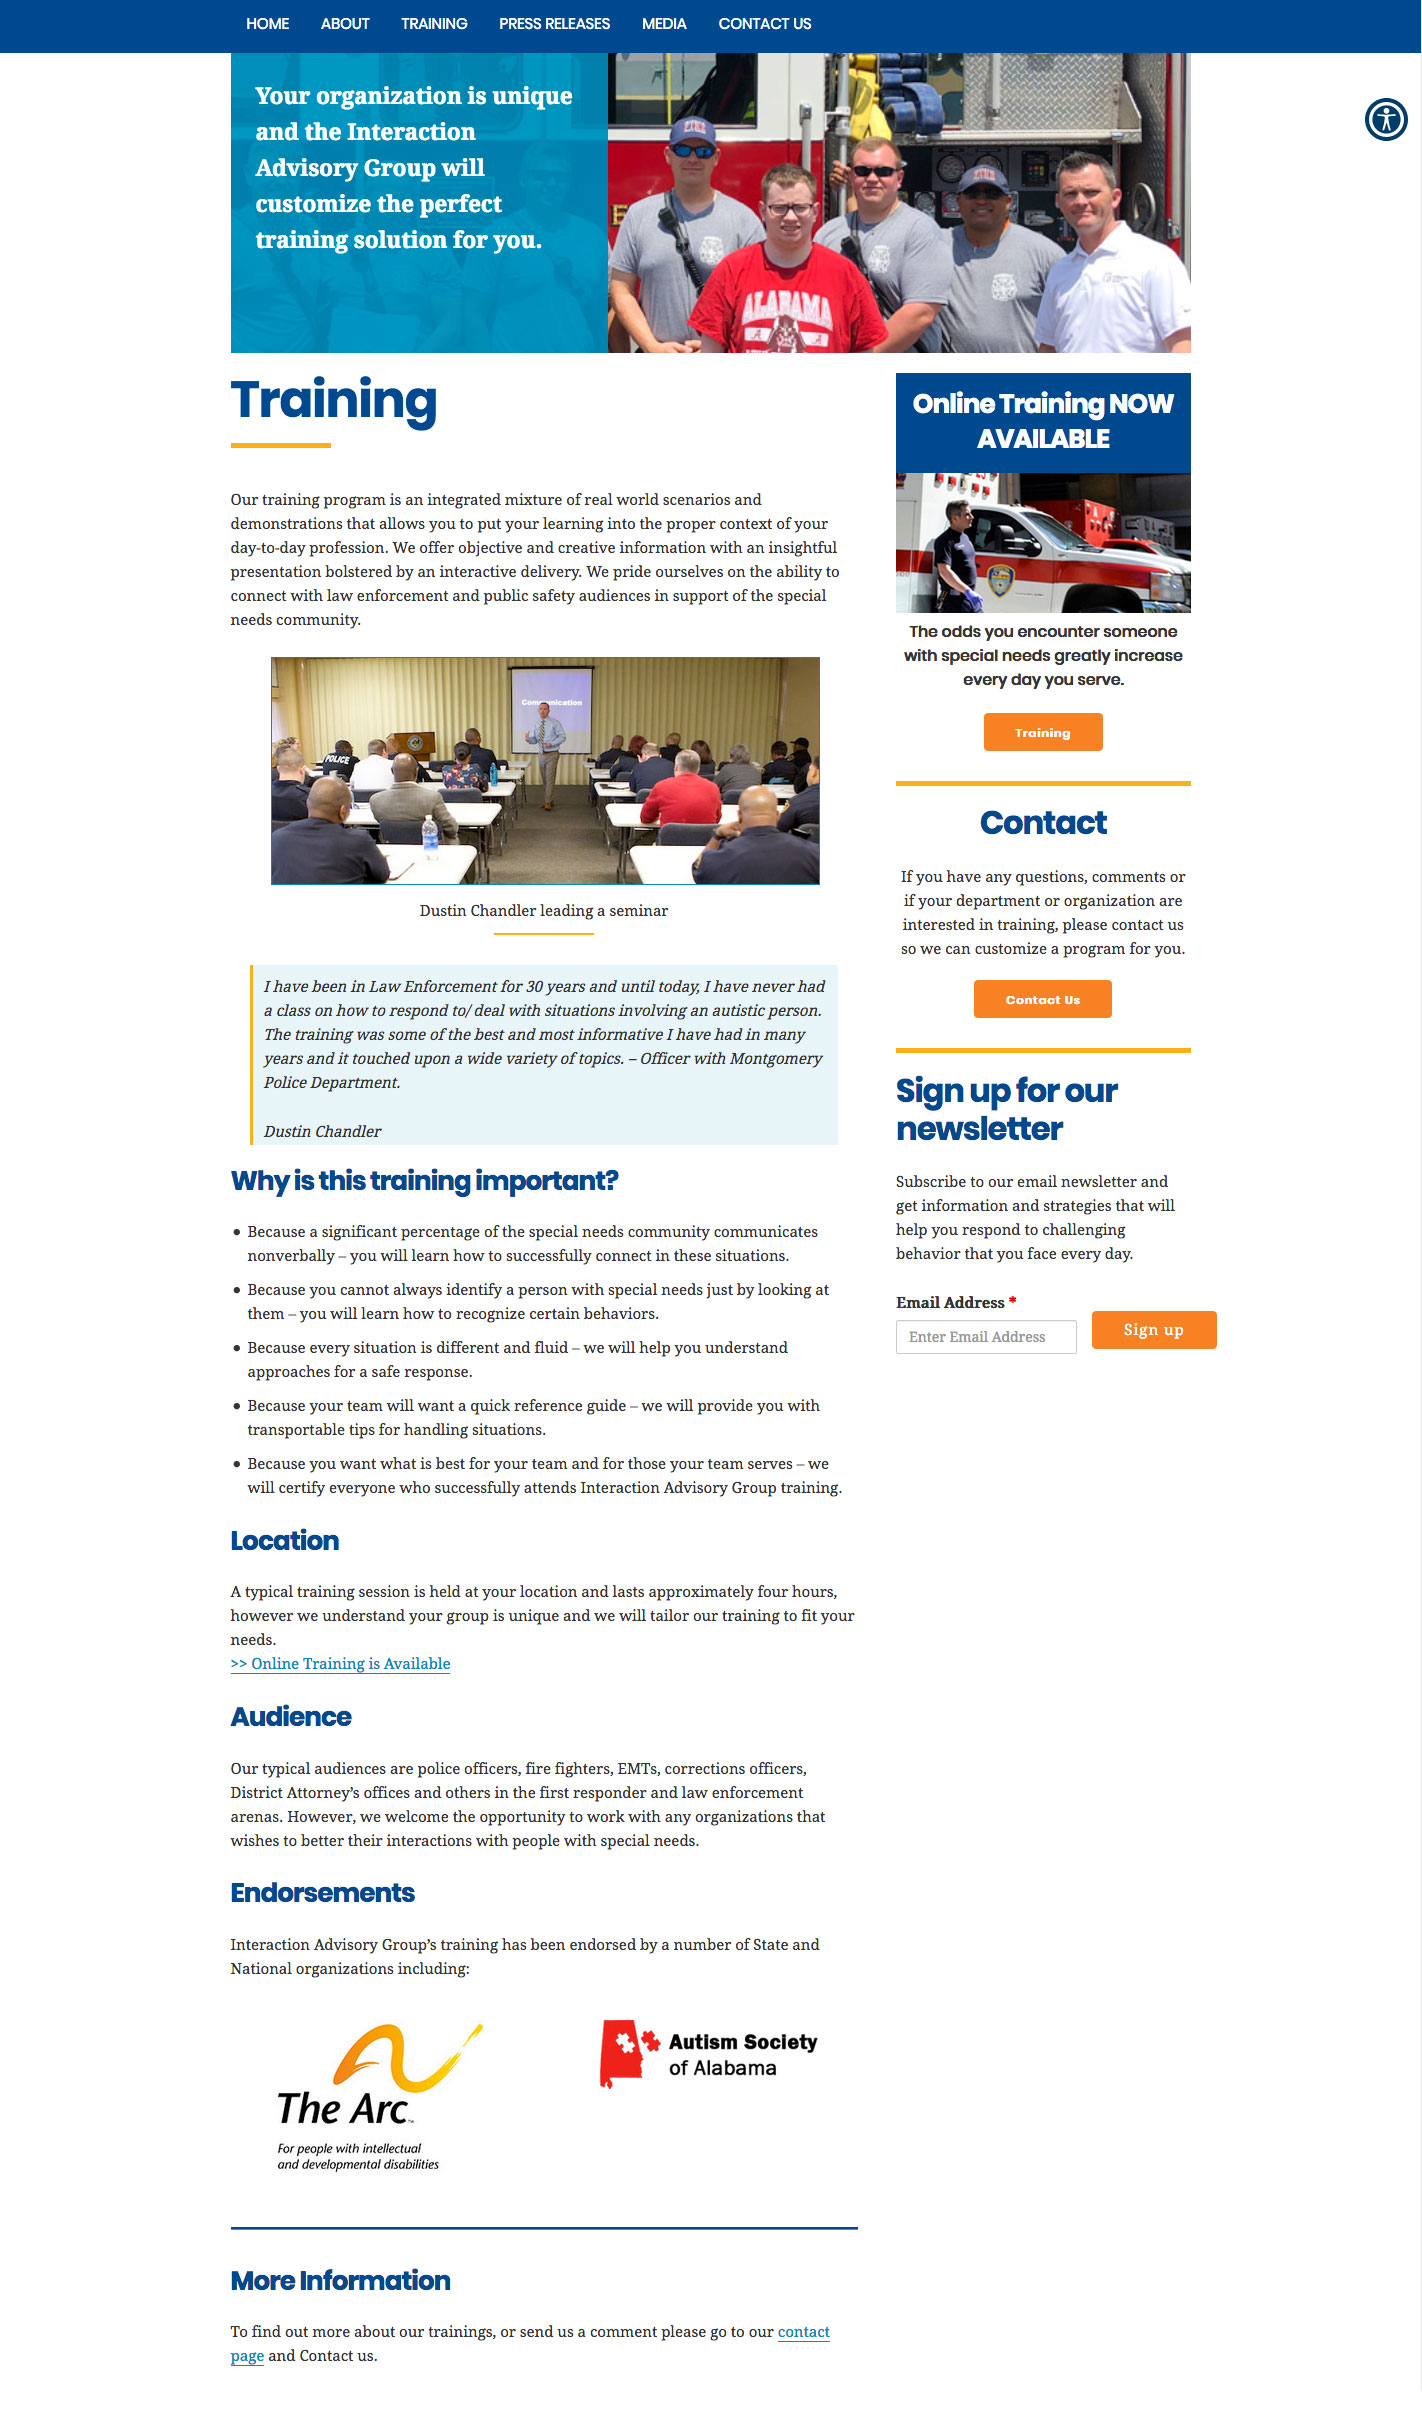 Interaction Advisory Group Website - Content Page